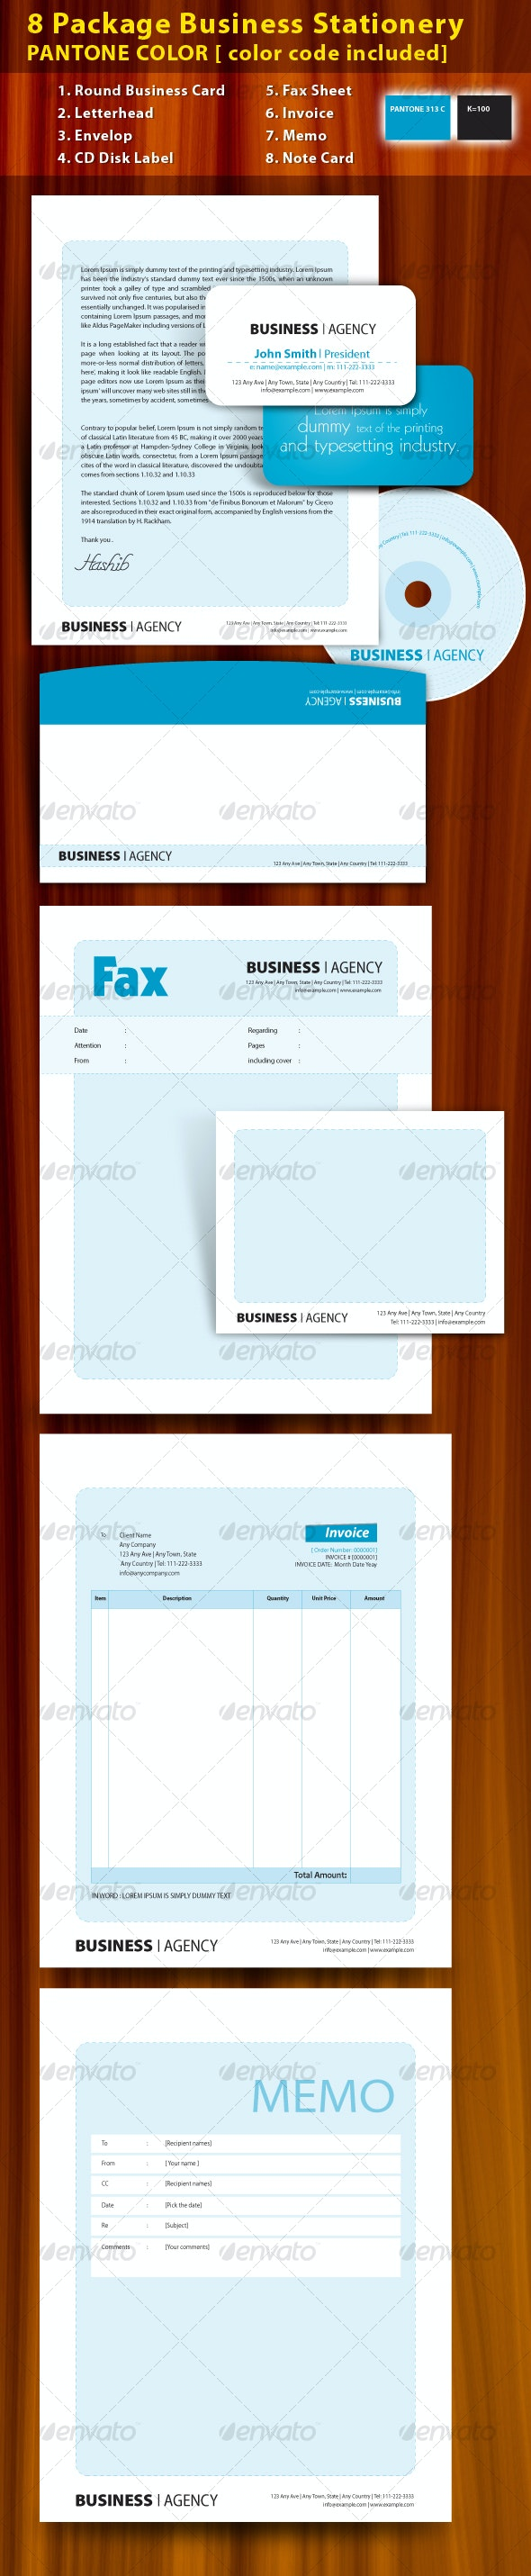 8 Package Business Stationery PANTONE COLOR ! - Stationery Print Templates